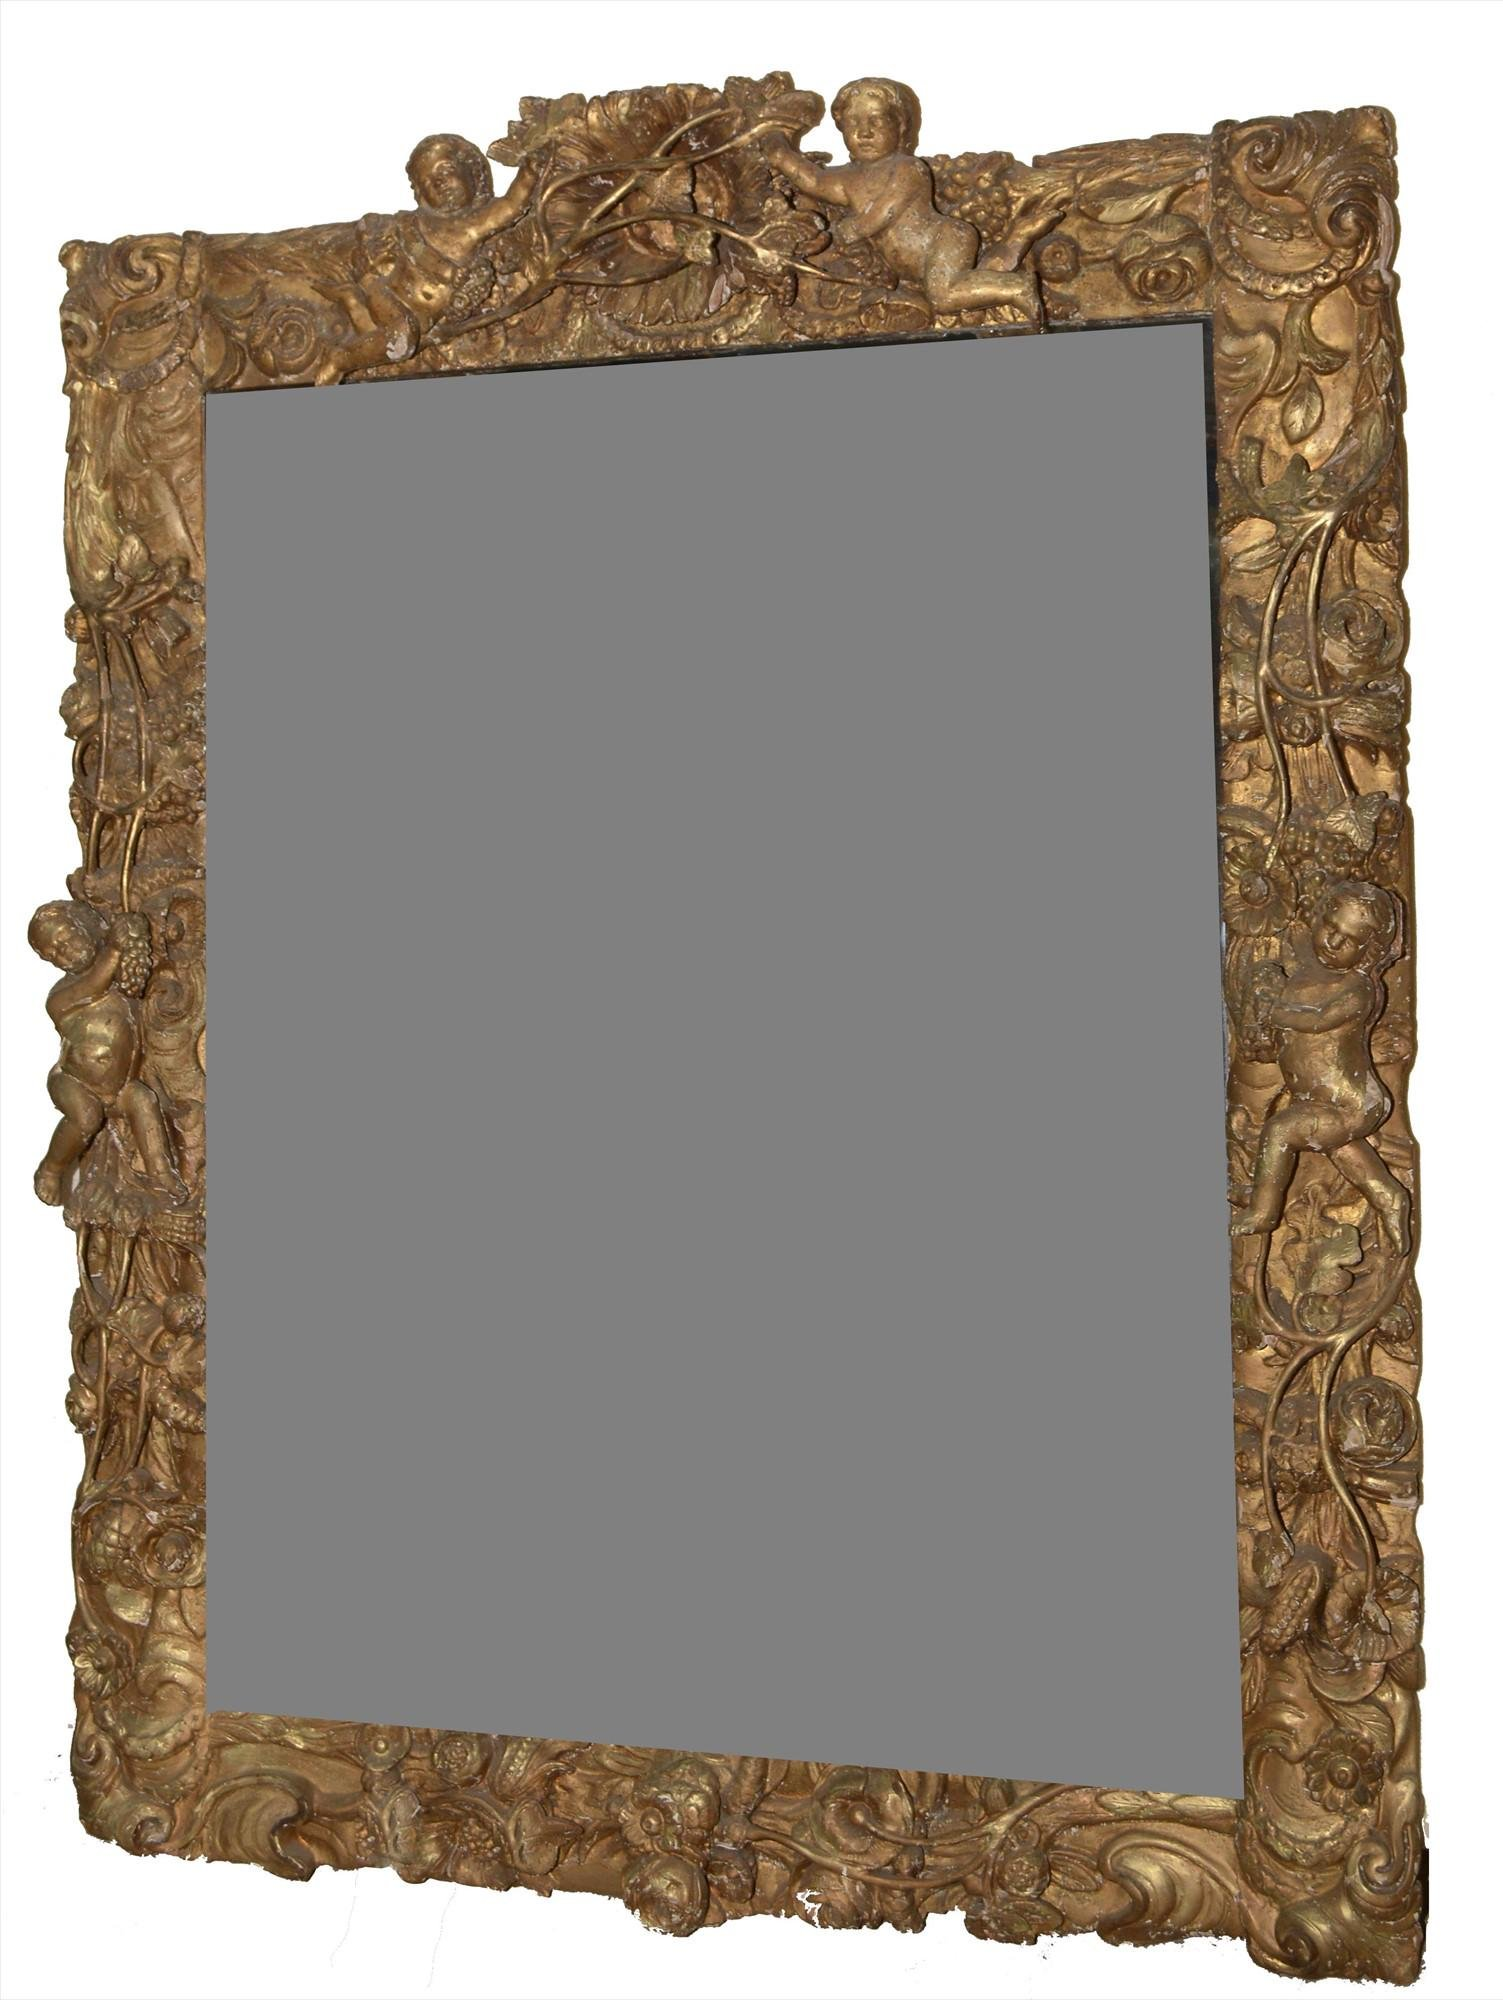 A Baroque style giltwood wall mirror